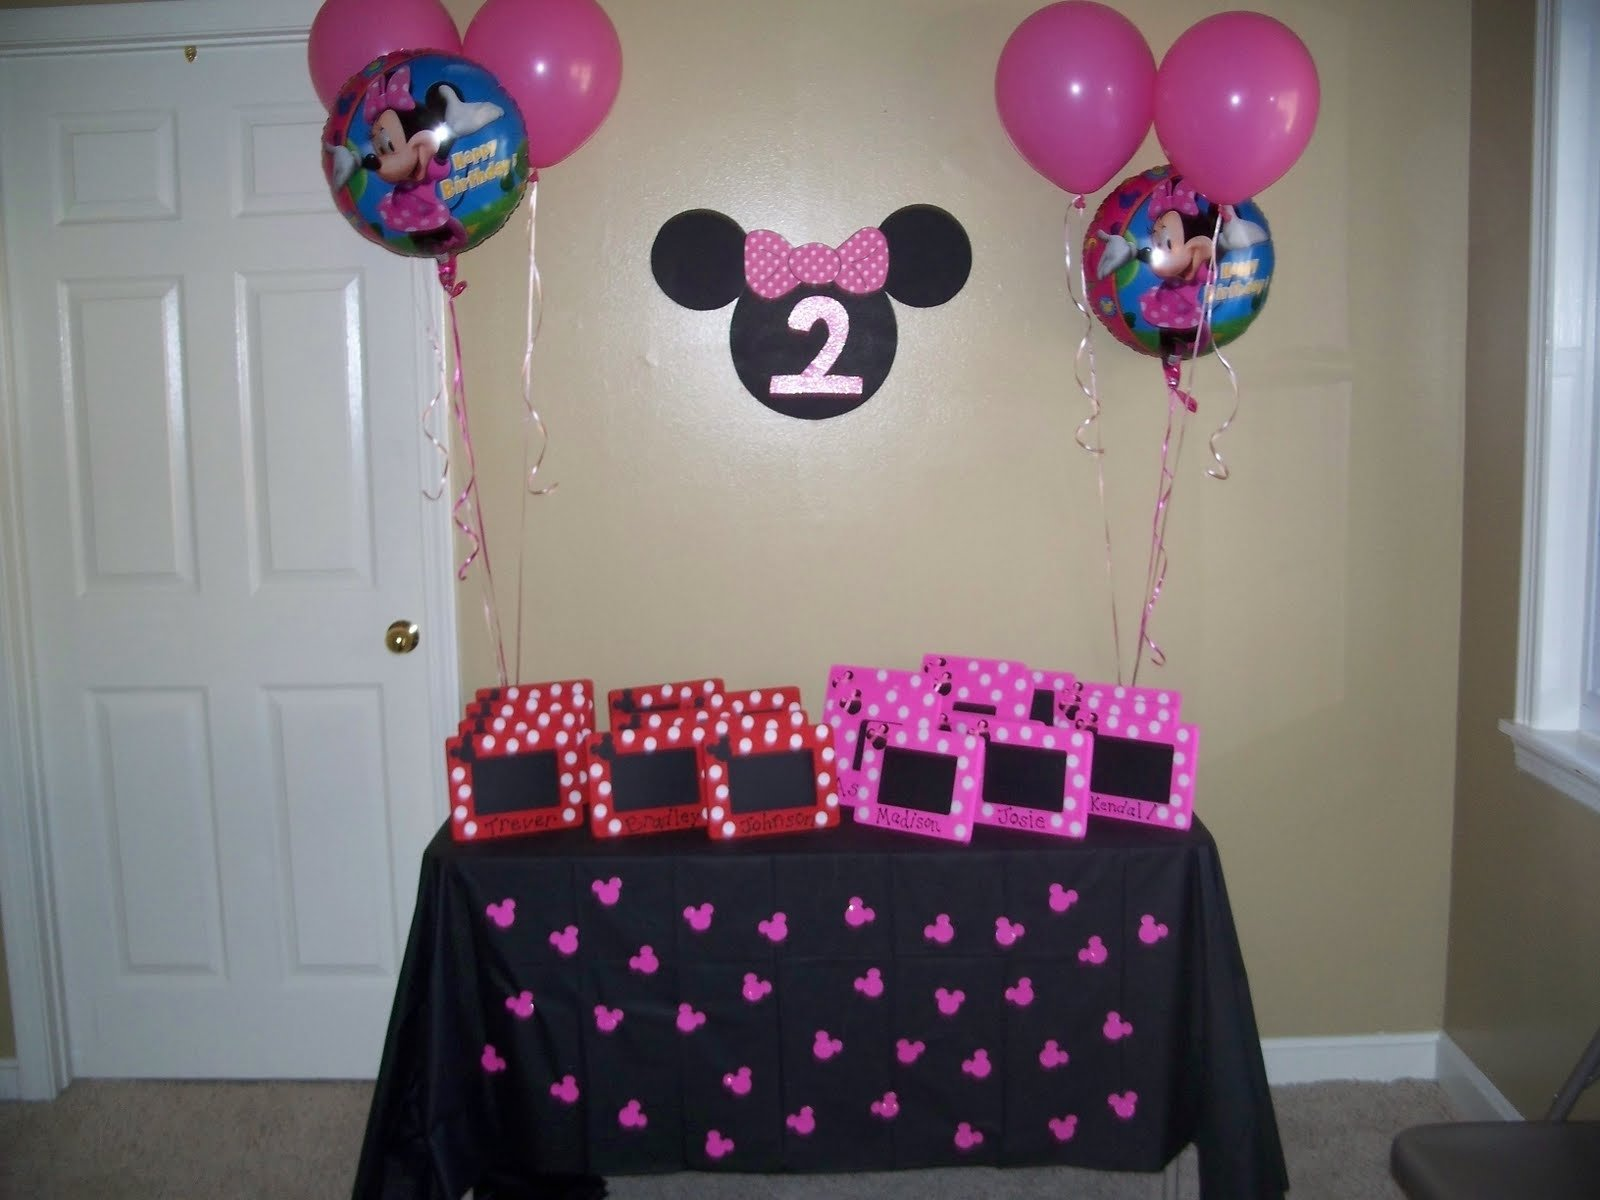 10 Elegant Minnie Mouse Birthday Party Ideas For A 2 Year Old birthday parties for girls september 2011 2020